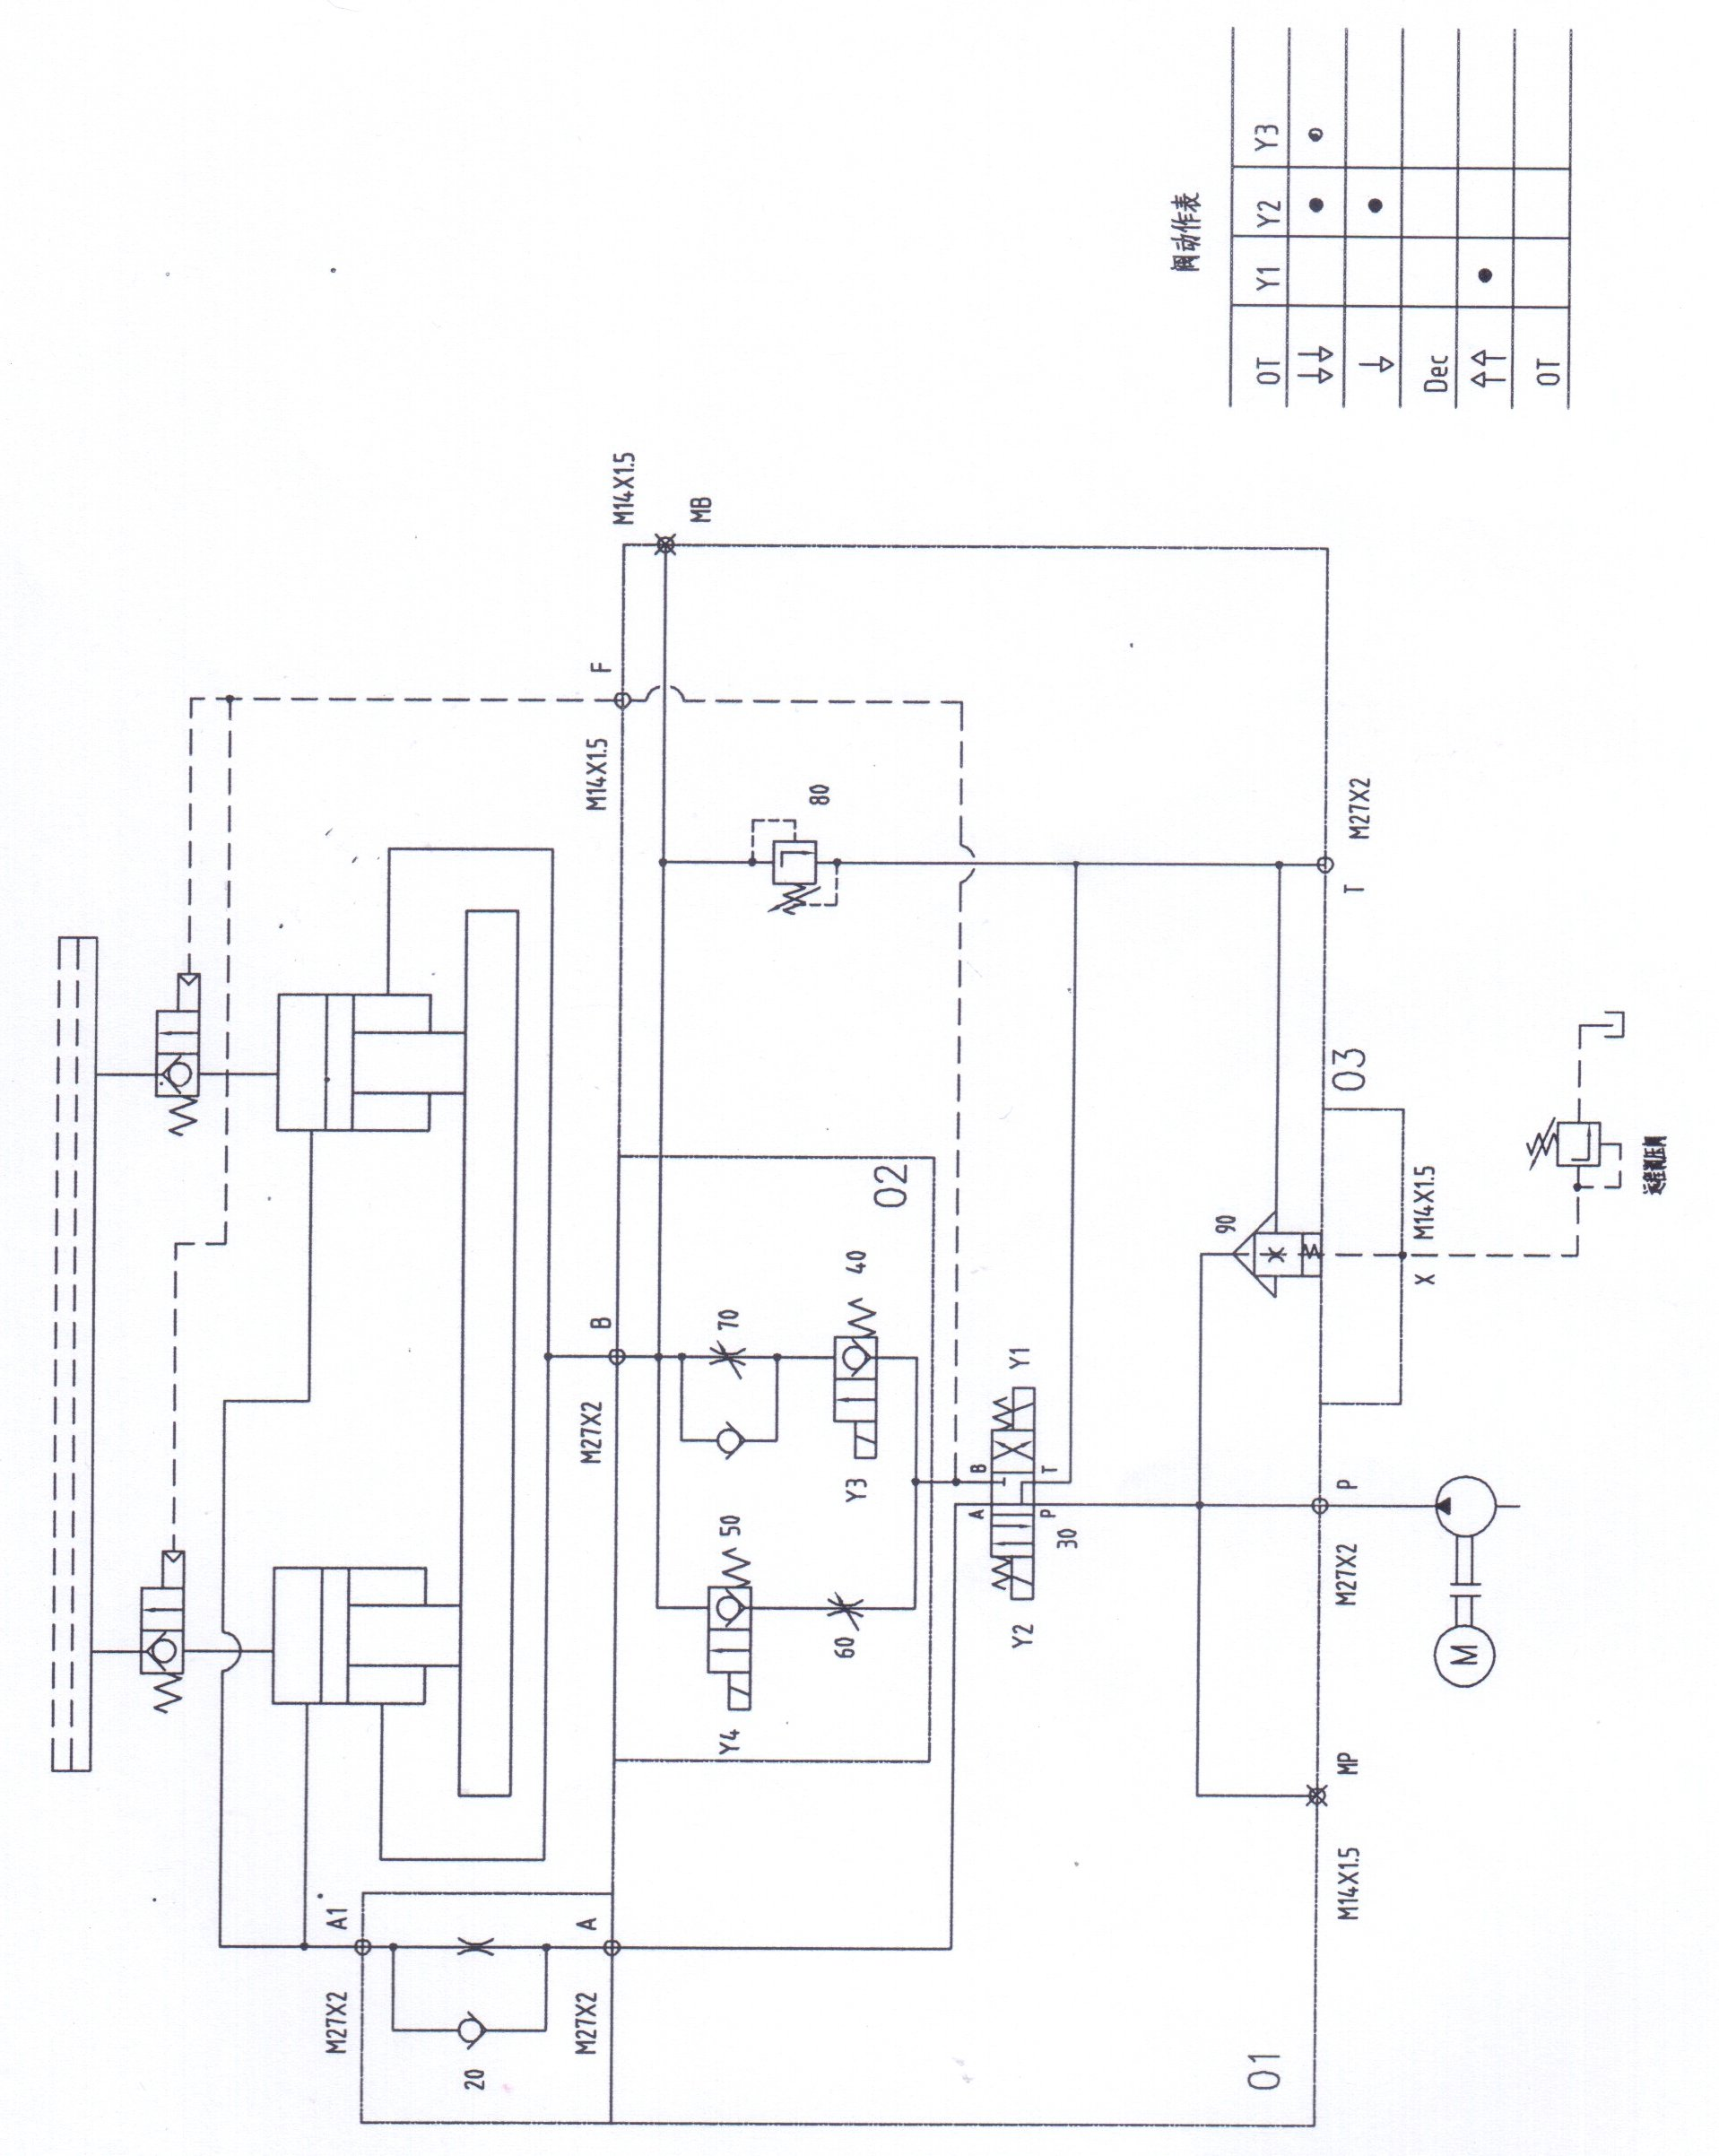 hight resolution of limit switch wiring diagram hydraulic ram wiring library square d limit switch diagram limit switch wiring